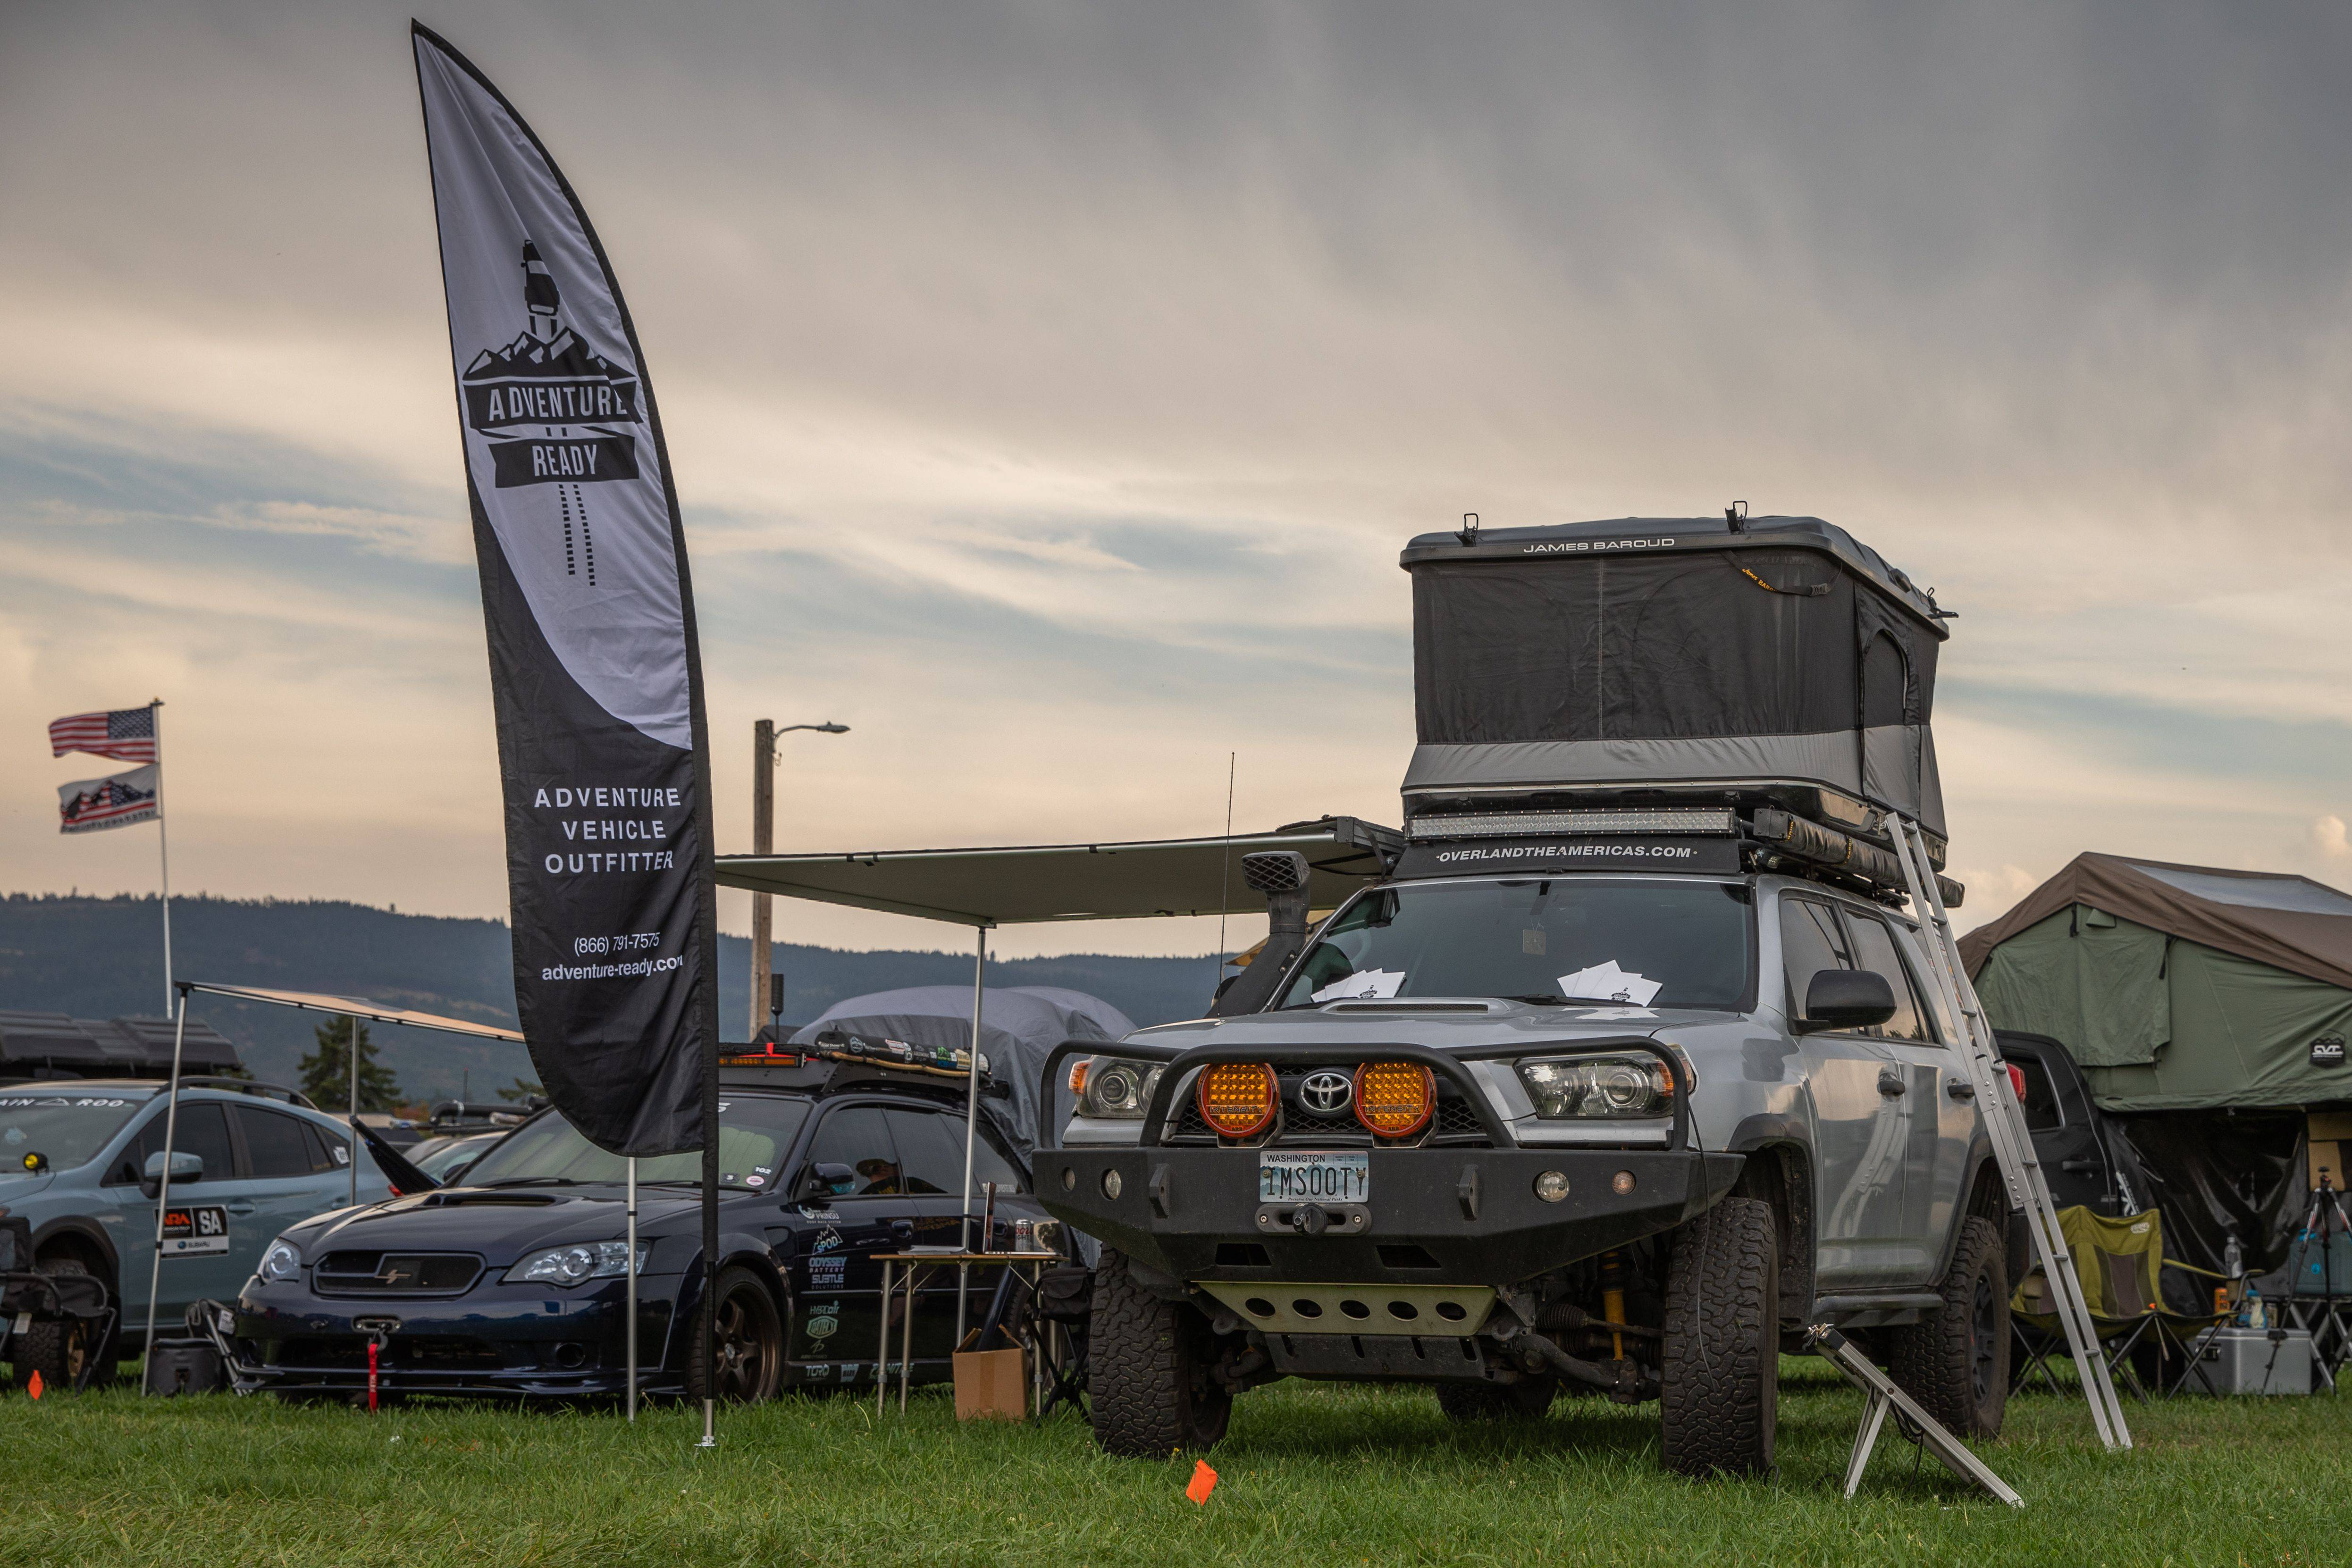 Toyo Tires Trailpass: Adventure Ready banner and 4Runner with rooftop tent